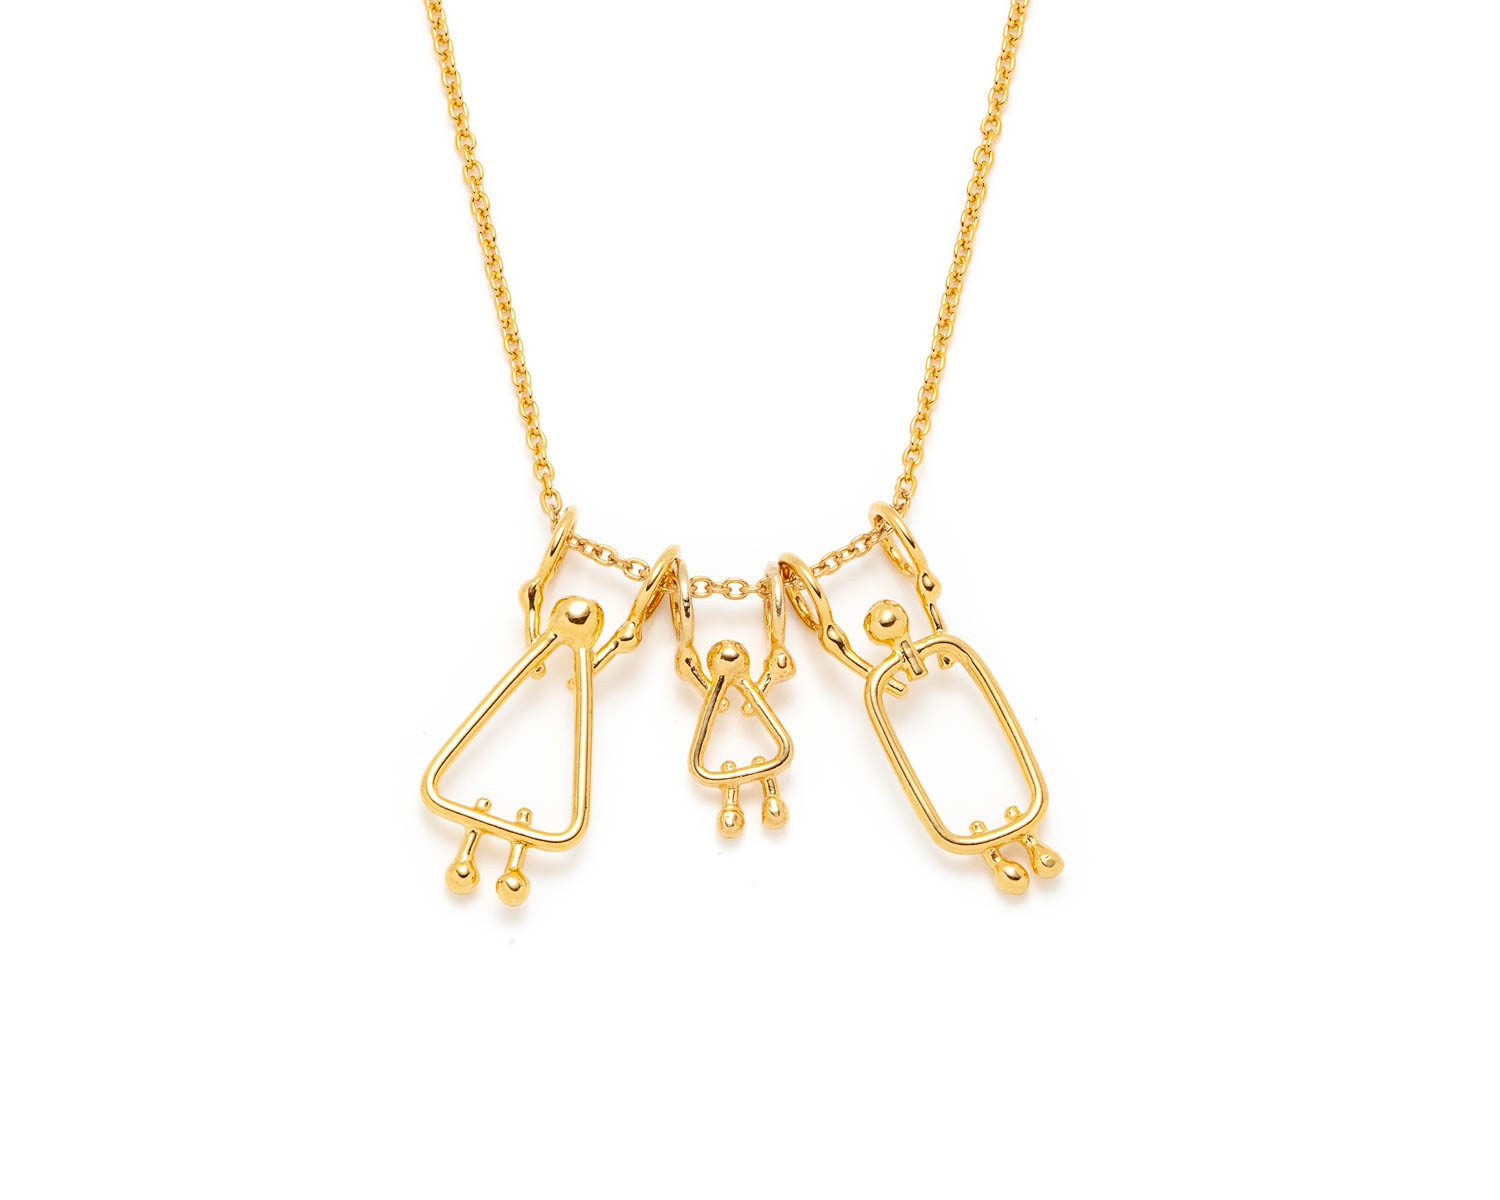 TM.gold.collier 3-maman + fille + papa.jpg